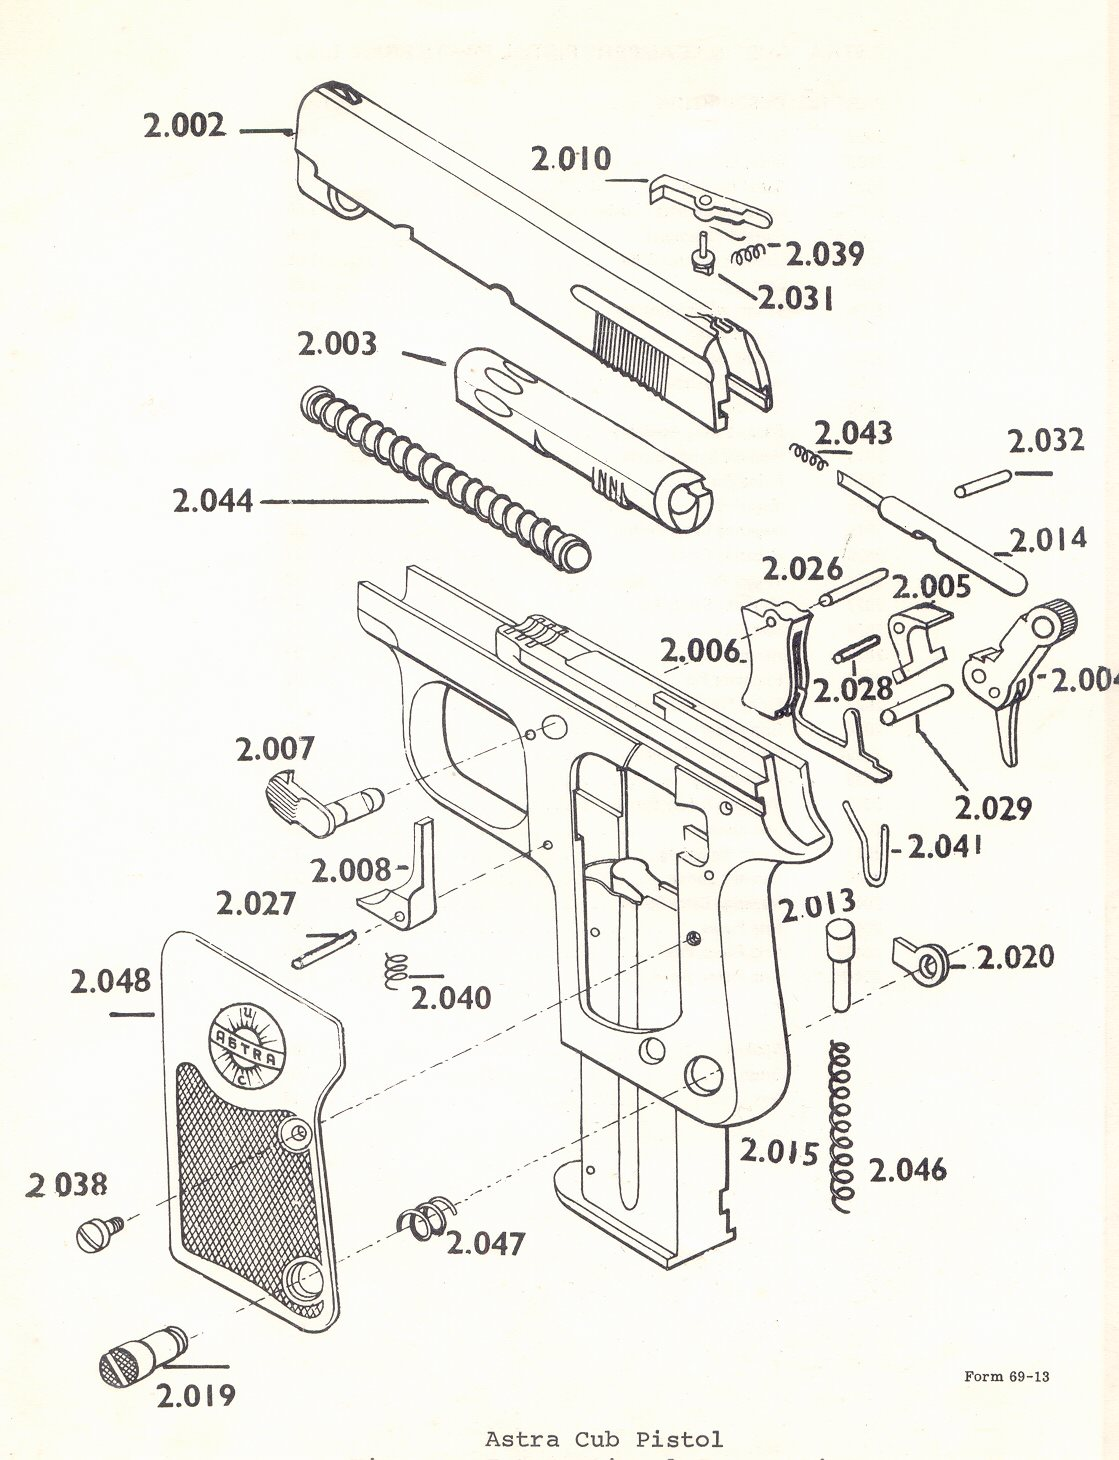 All Avaialble Astra Gun Parts Bob S Gun Shop Millions